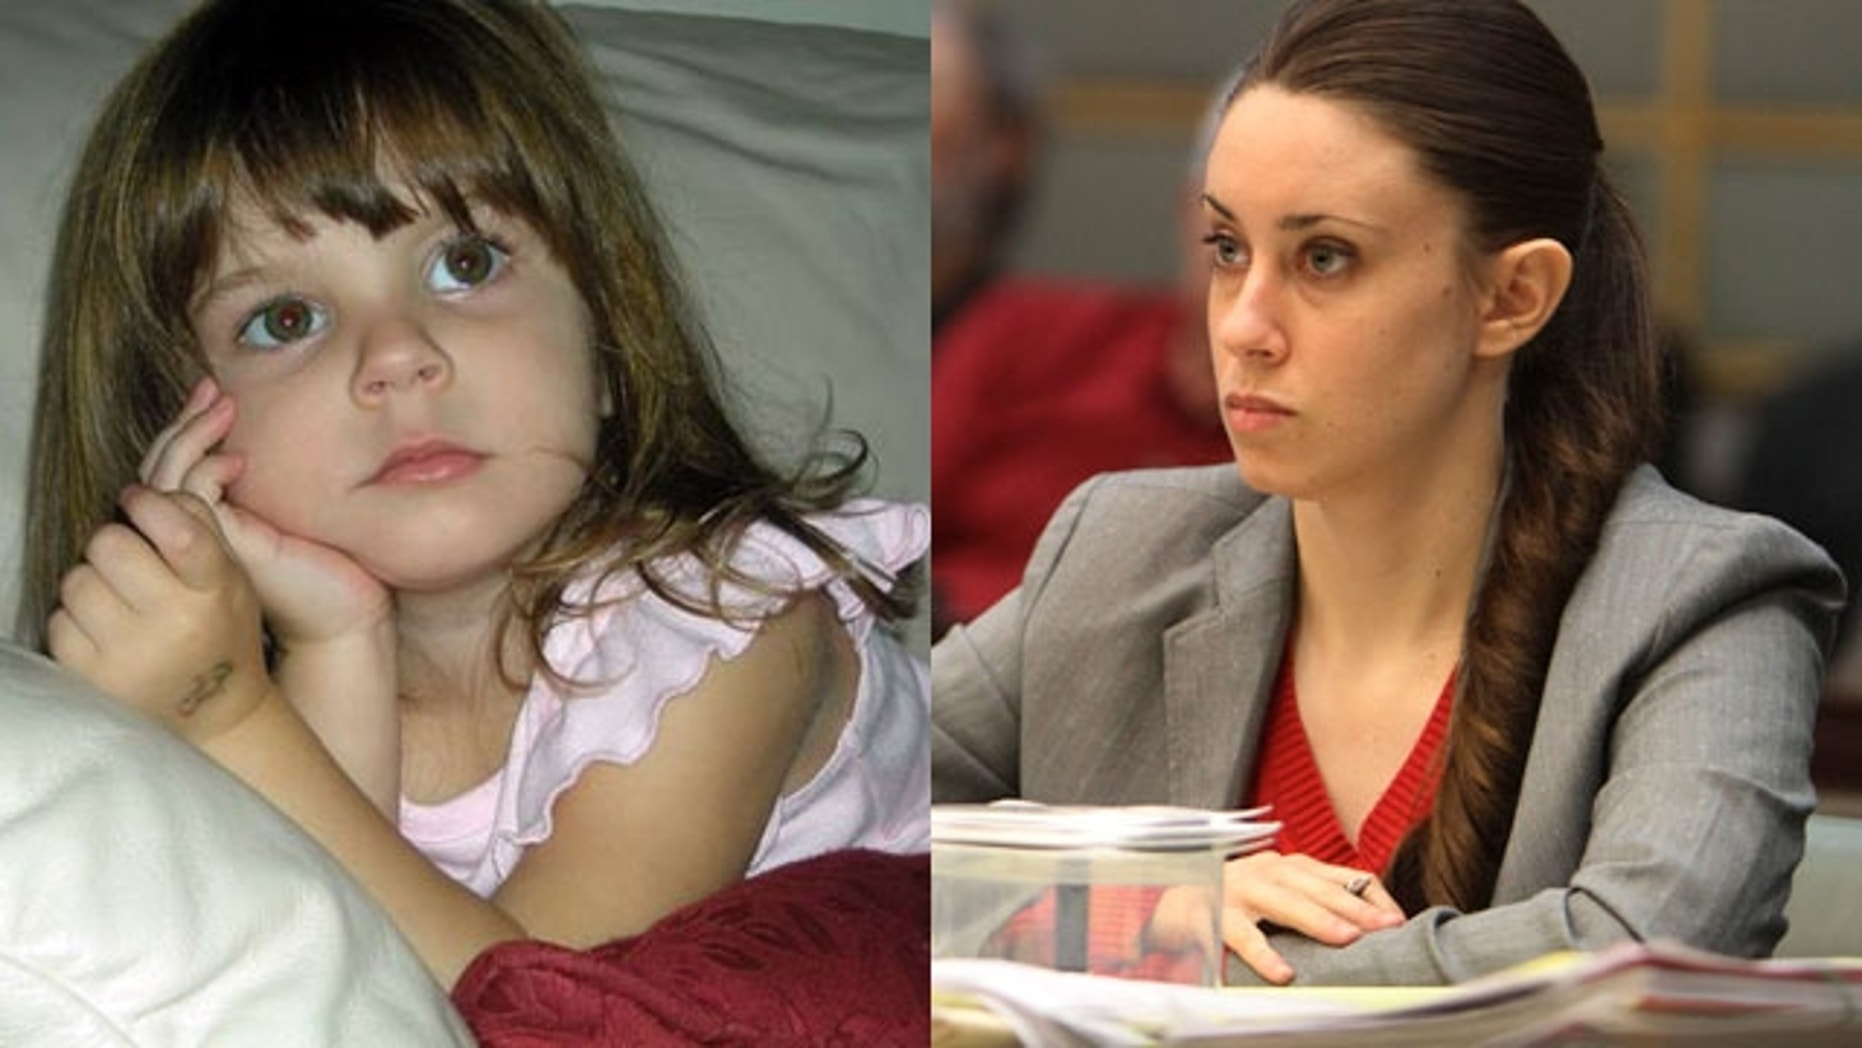 Casey Anthony, right, is on trial for the murder of her two-year-old daughter, Caylee, left.